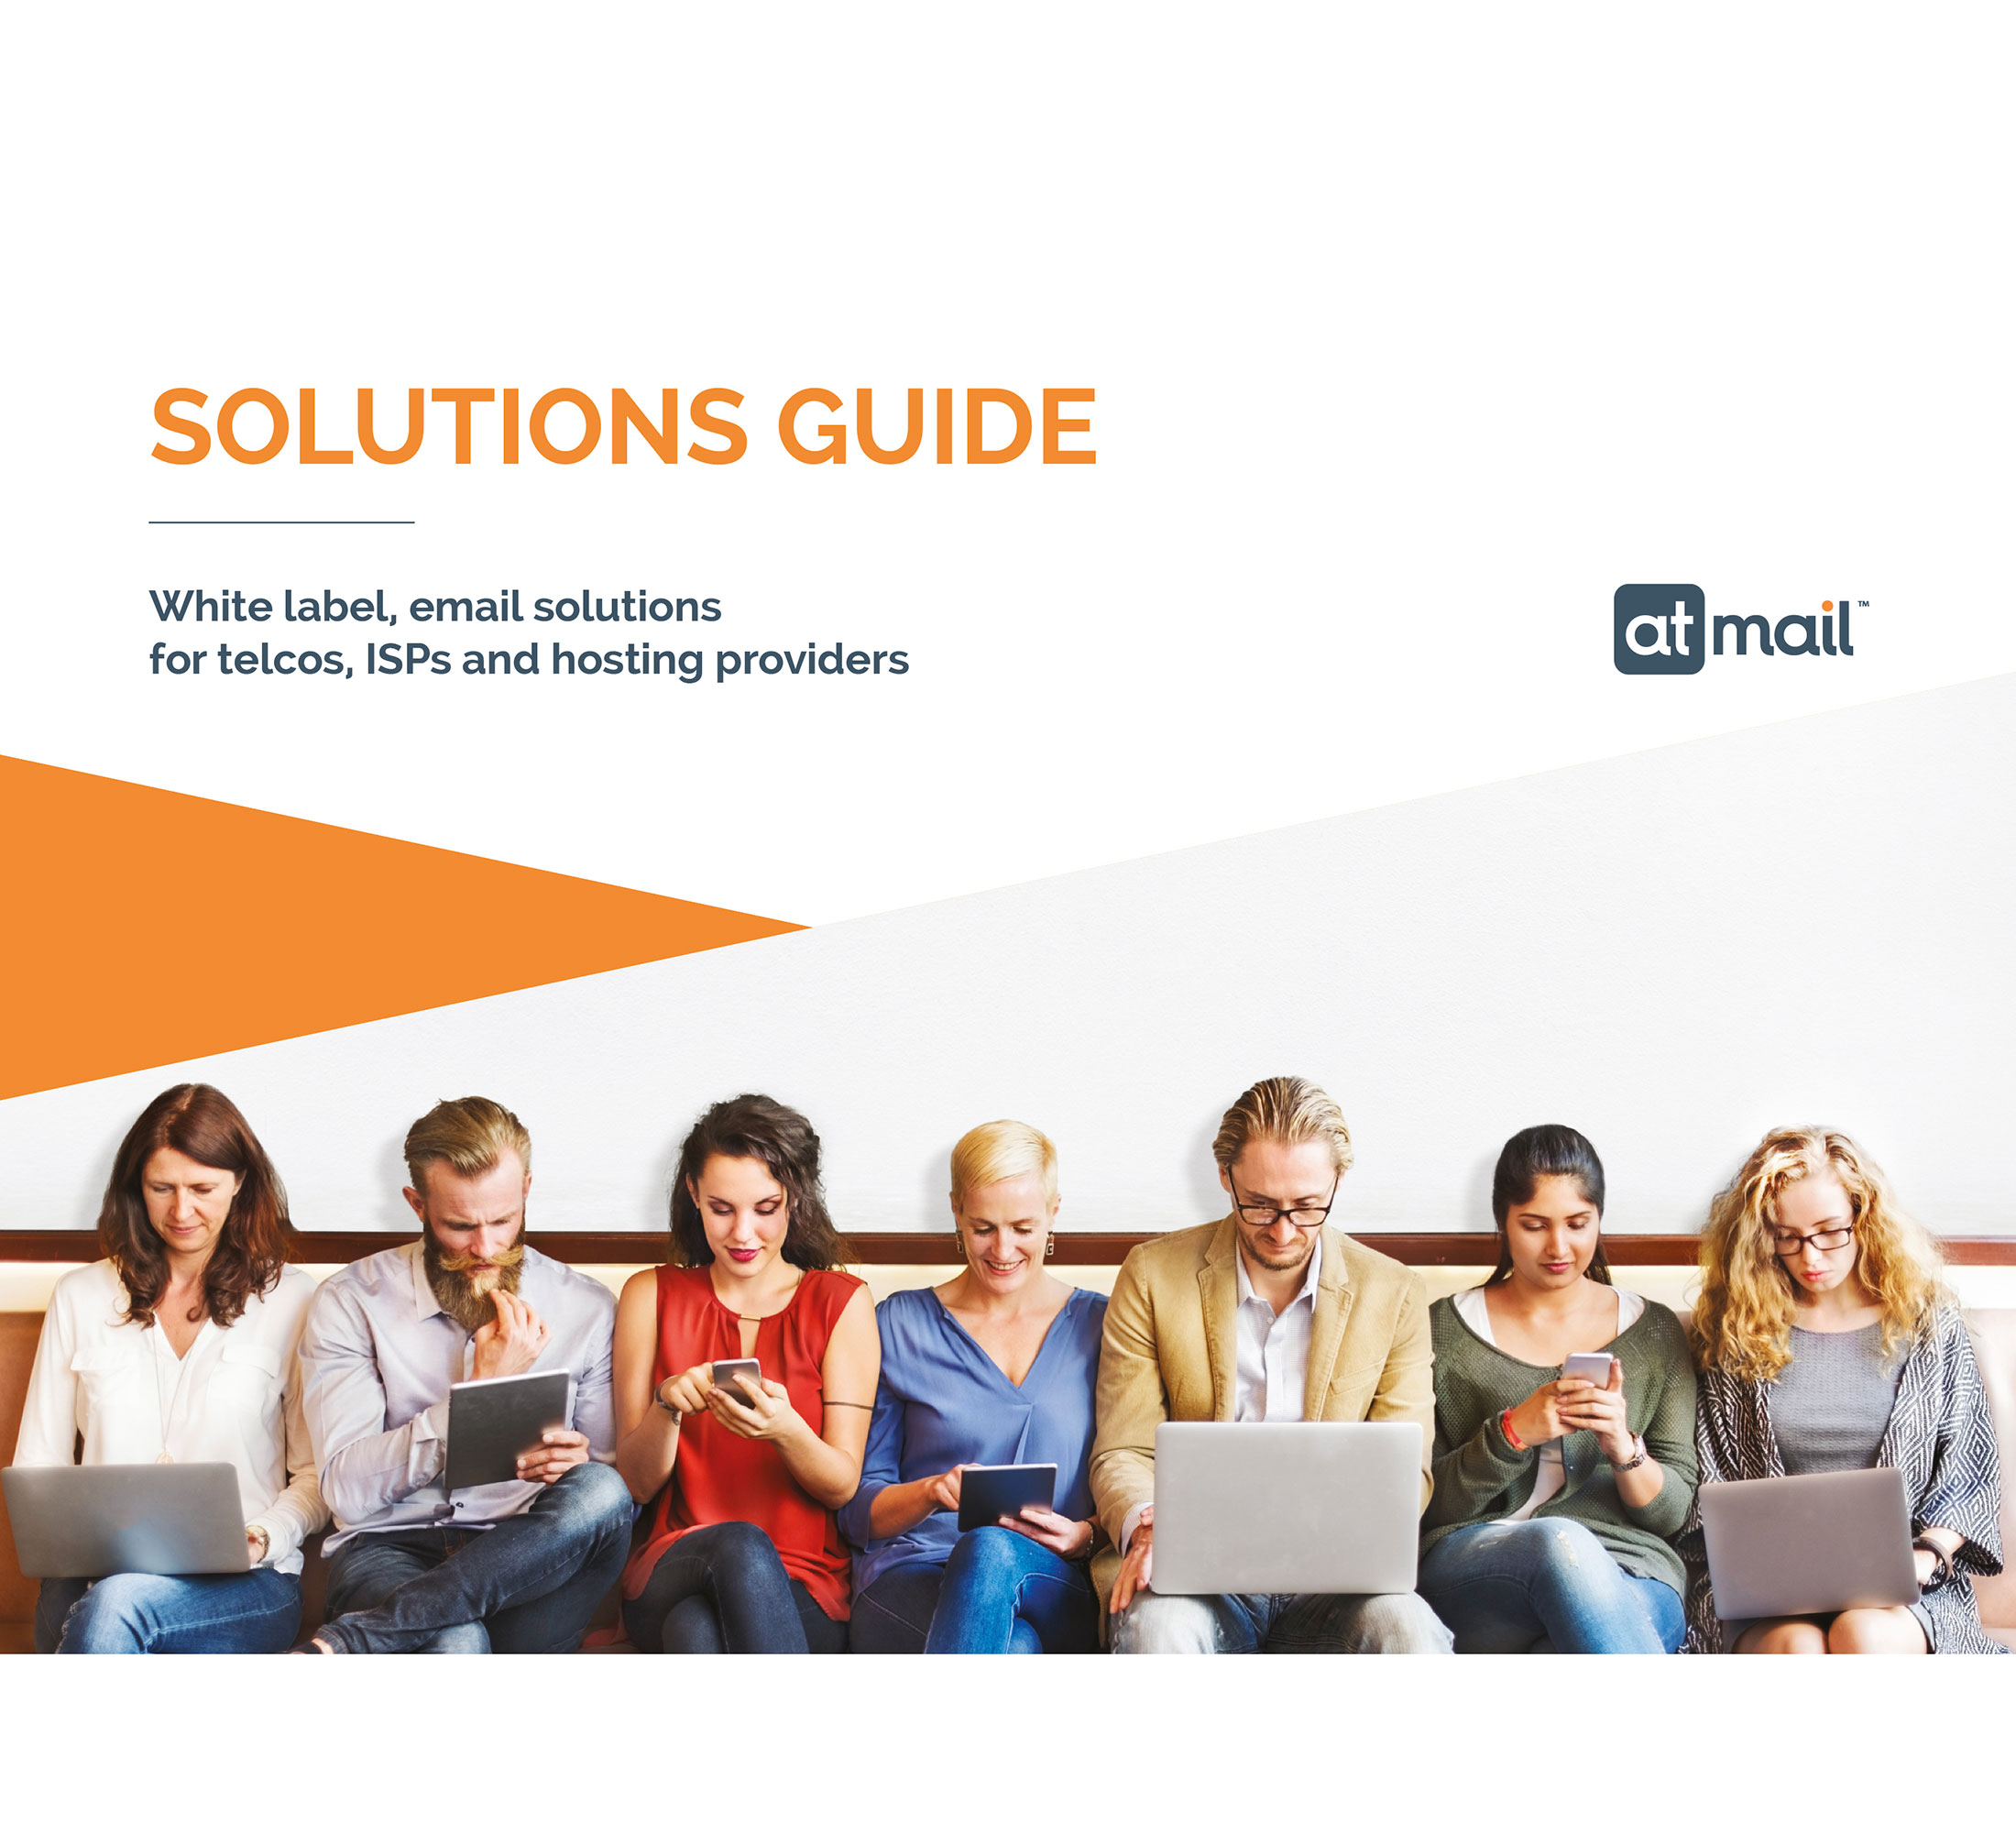 Solutions Guide